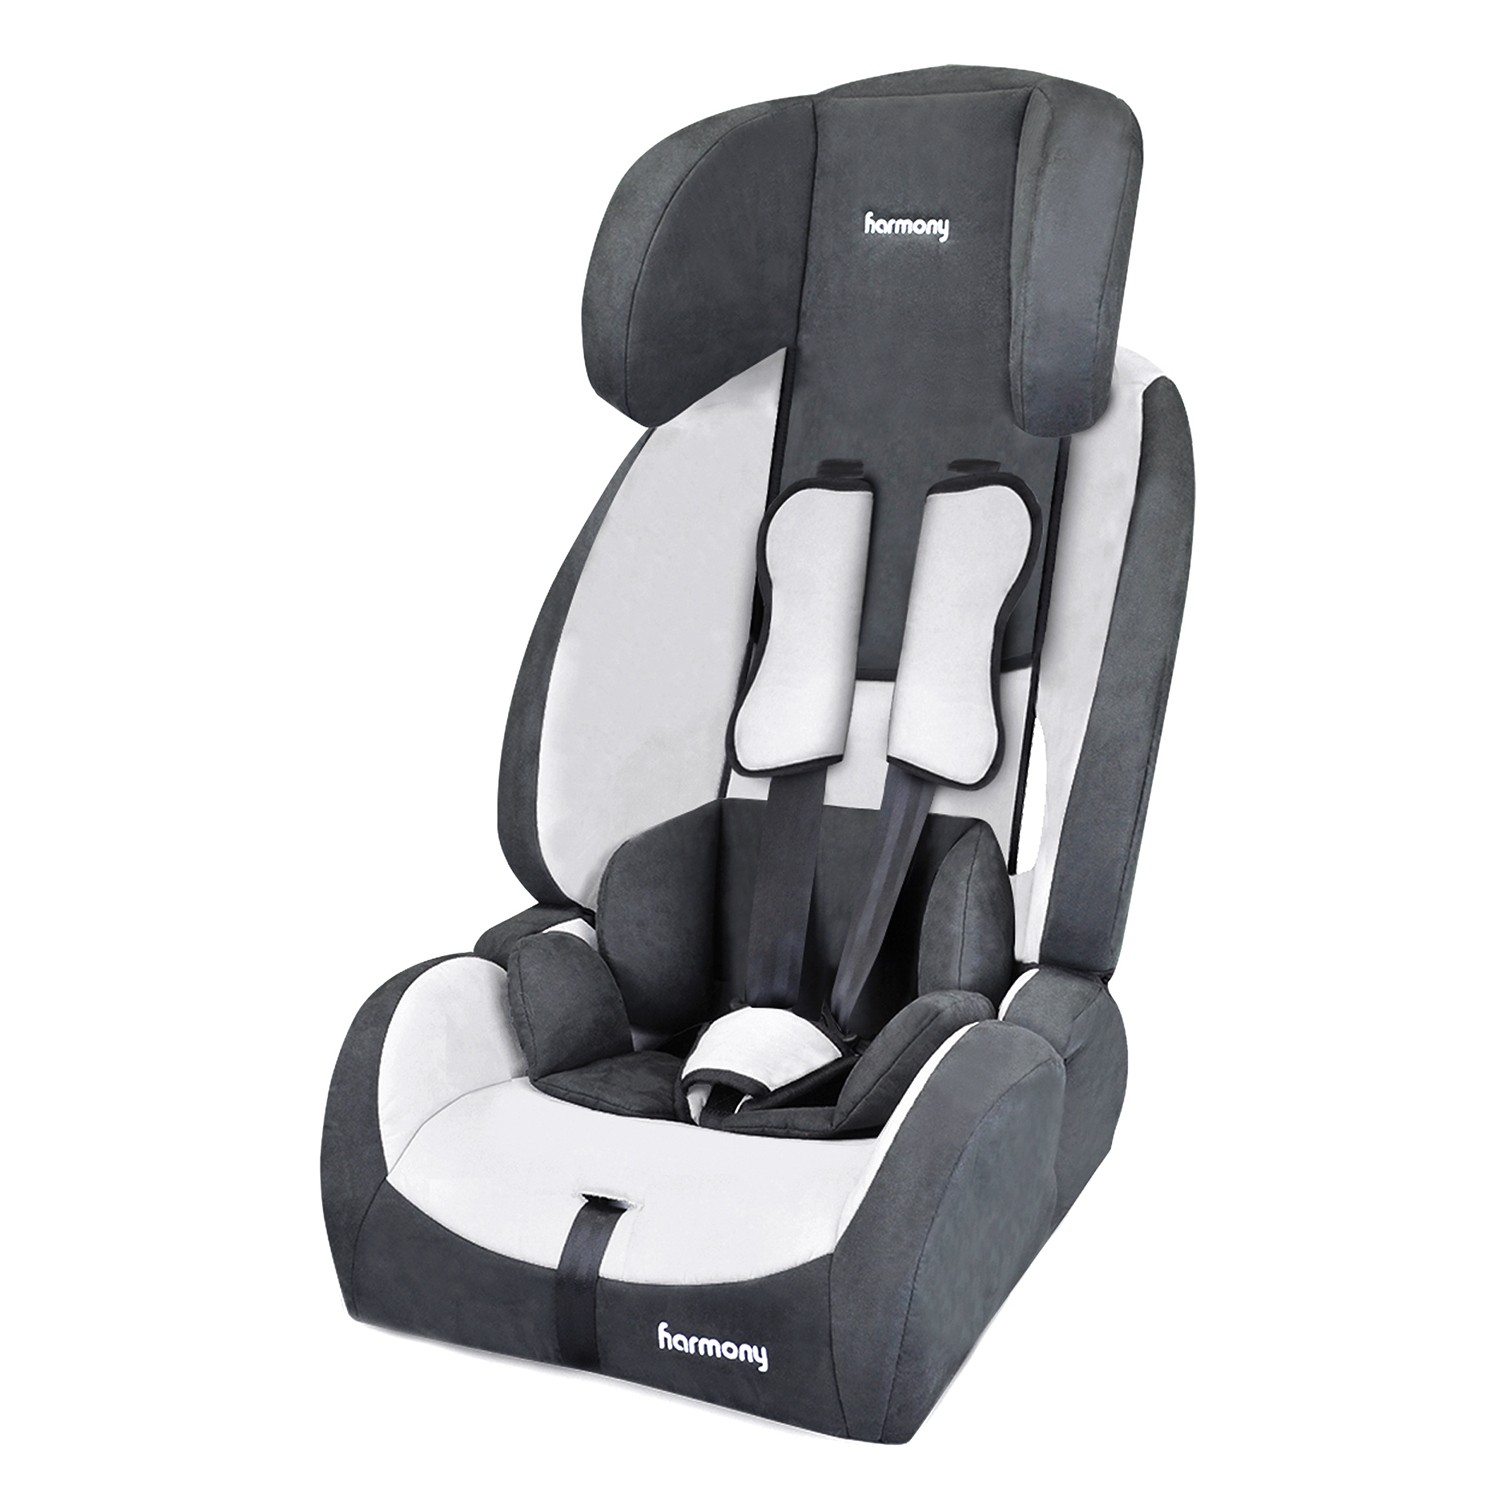 Genesys Deluxe Harnessed Booster Seat